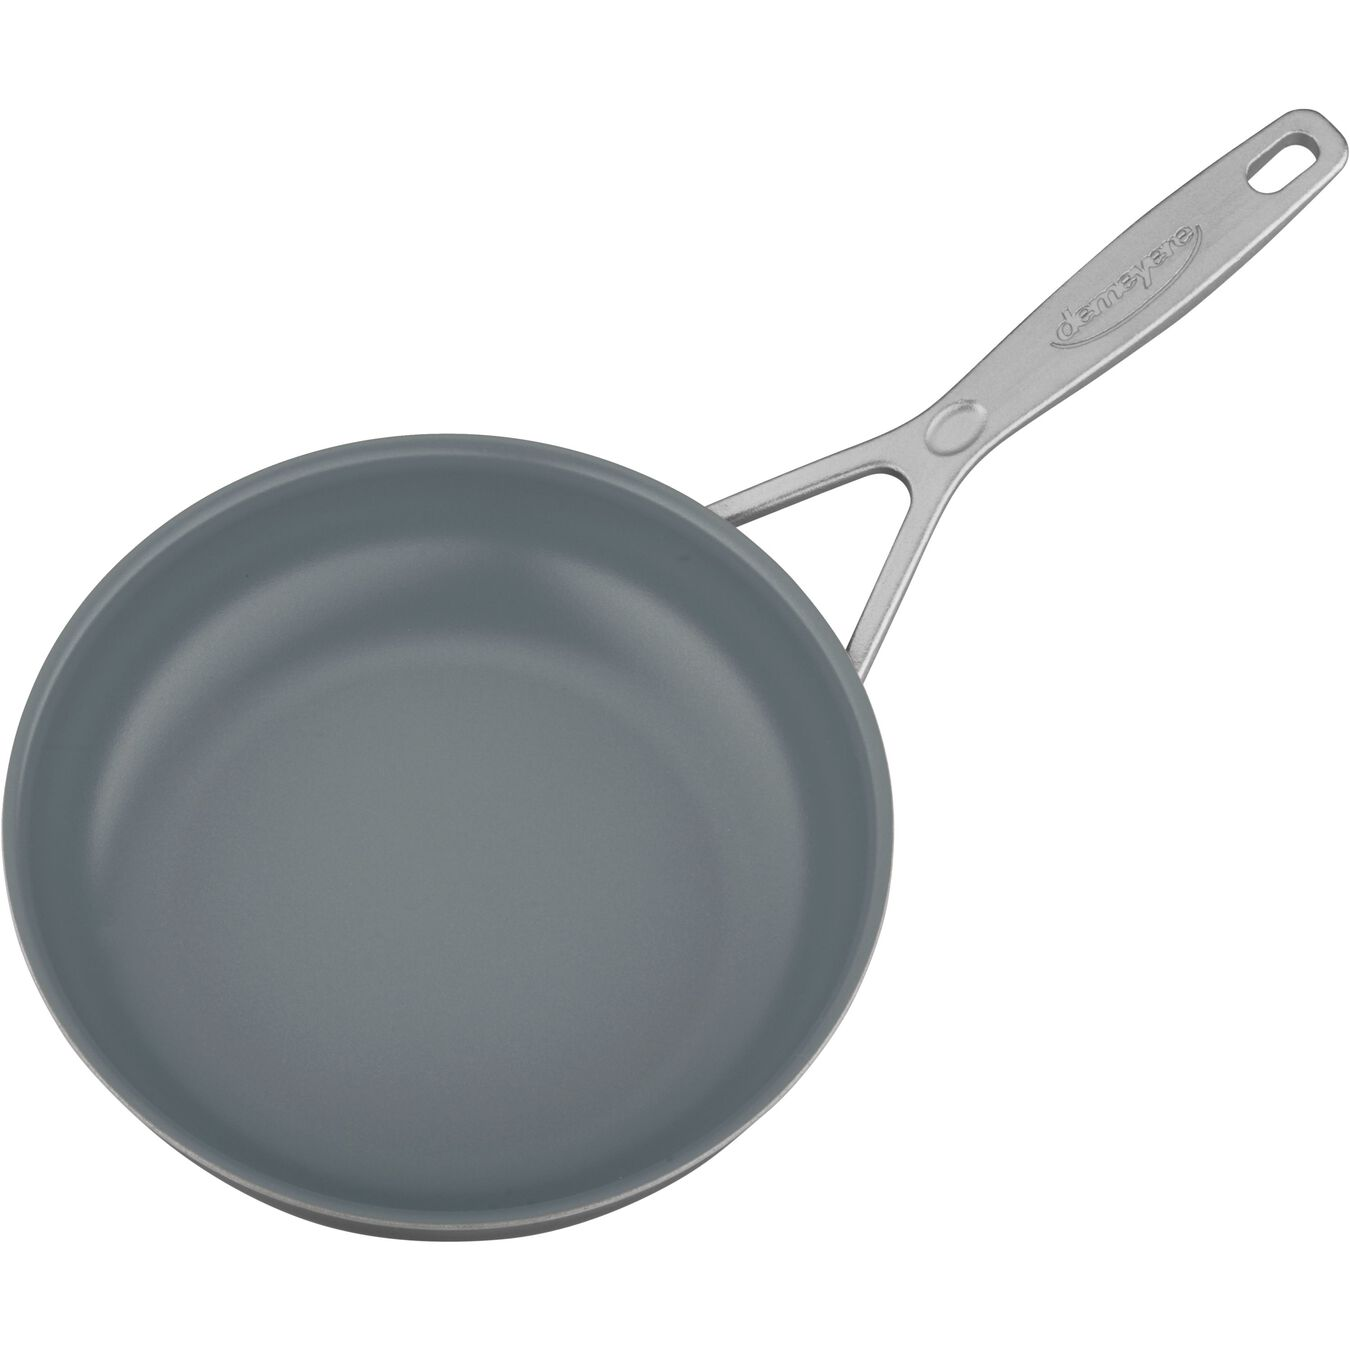 8-inch, 18/10 Stainless Steel, Ceramic, Frying pan,,large 3